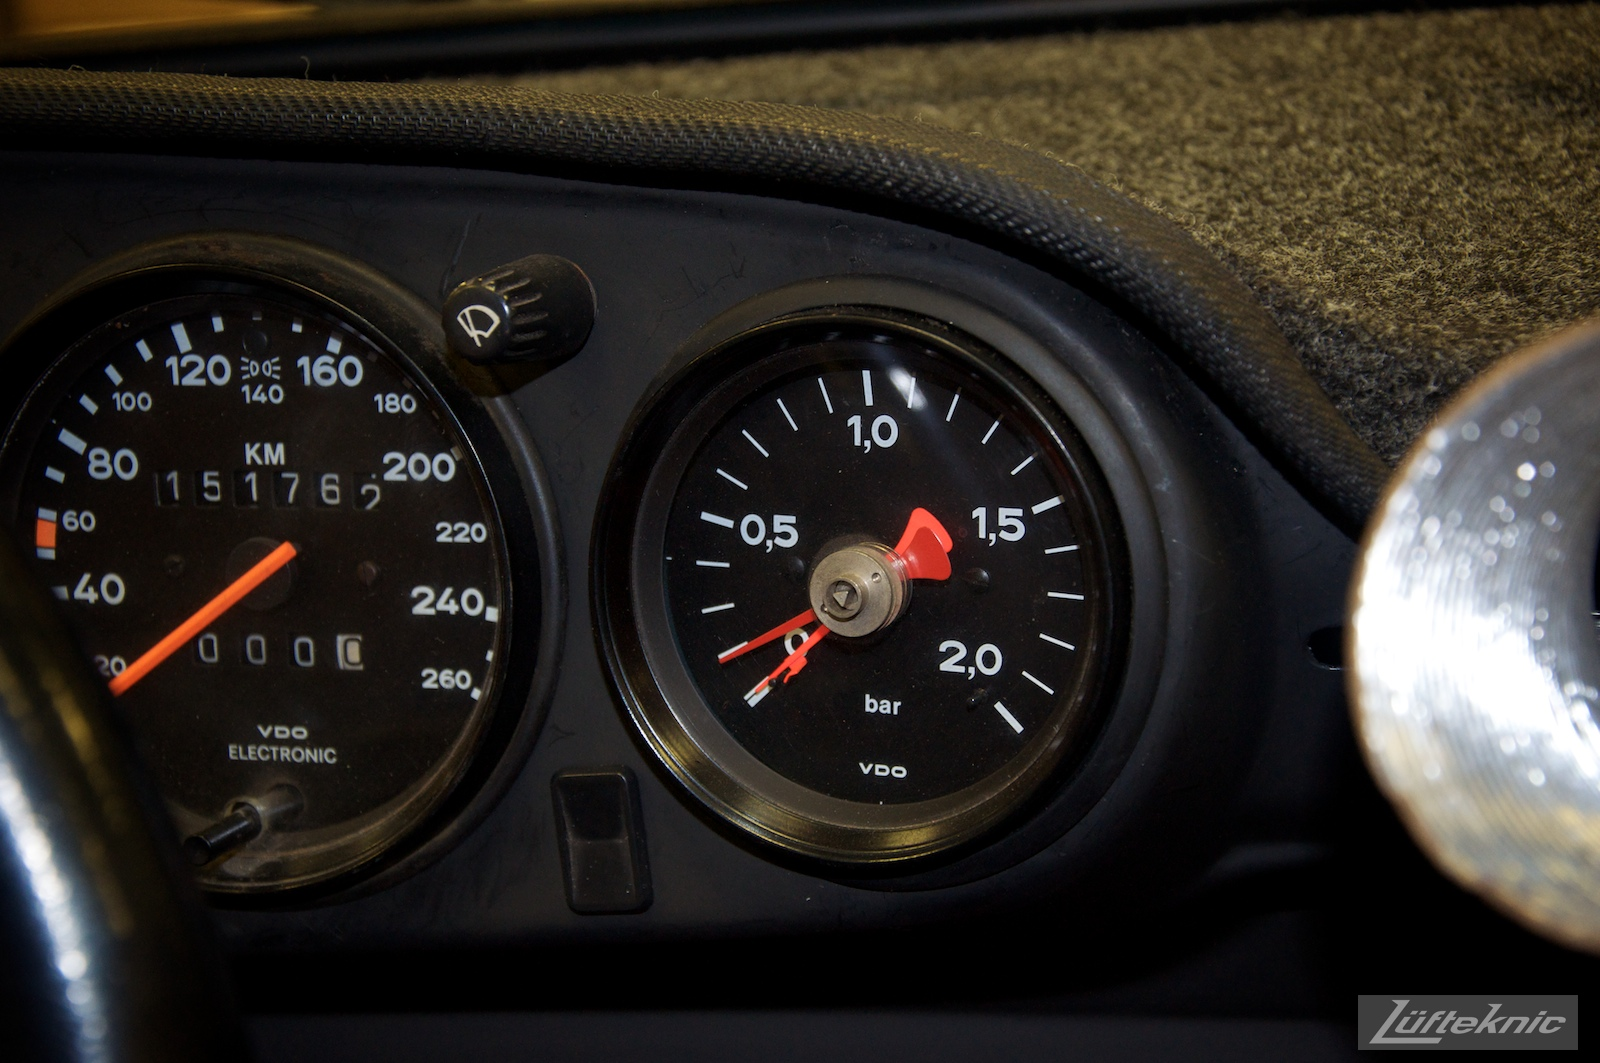 935 style boost gauge on the Lüfteknic #projectstuka Porsche 930 Turbo